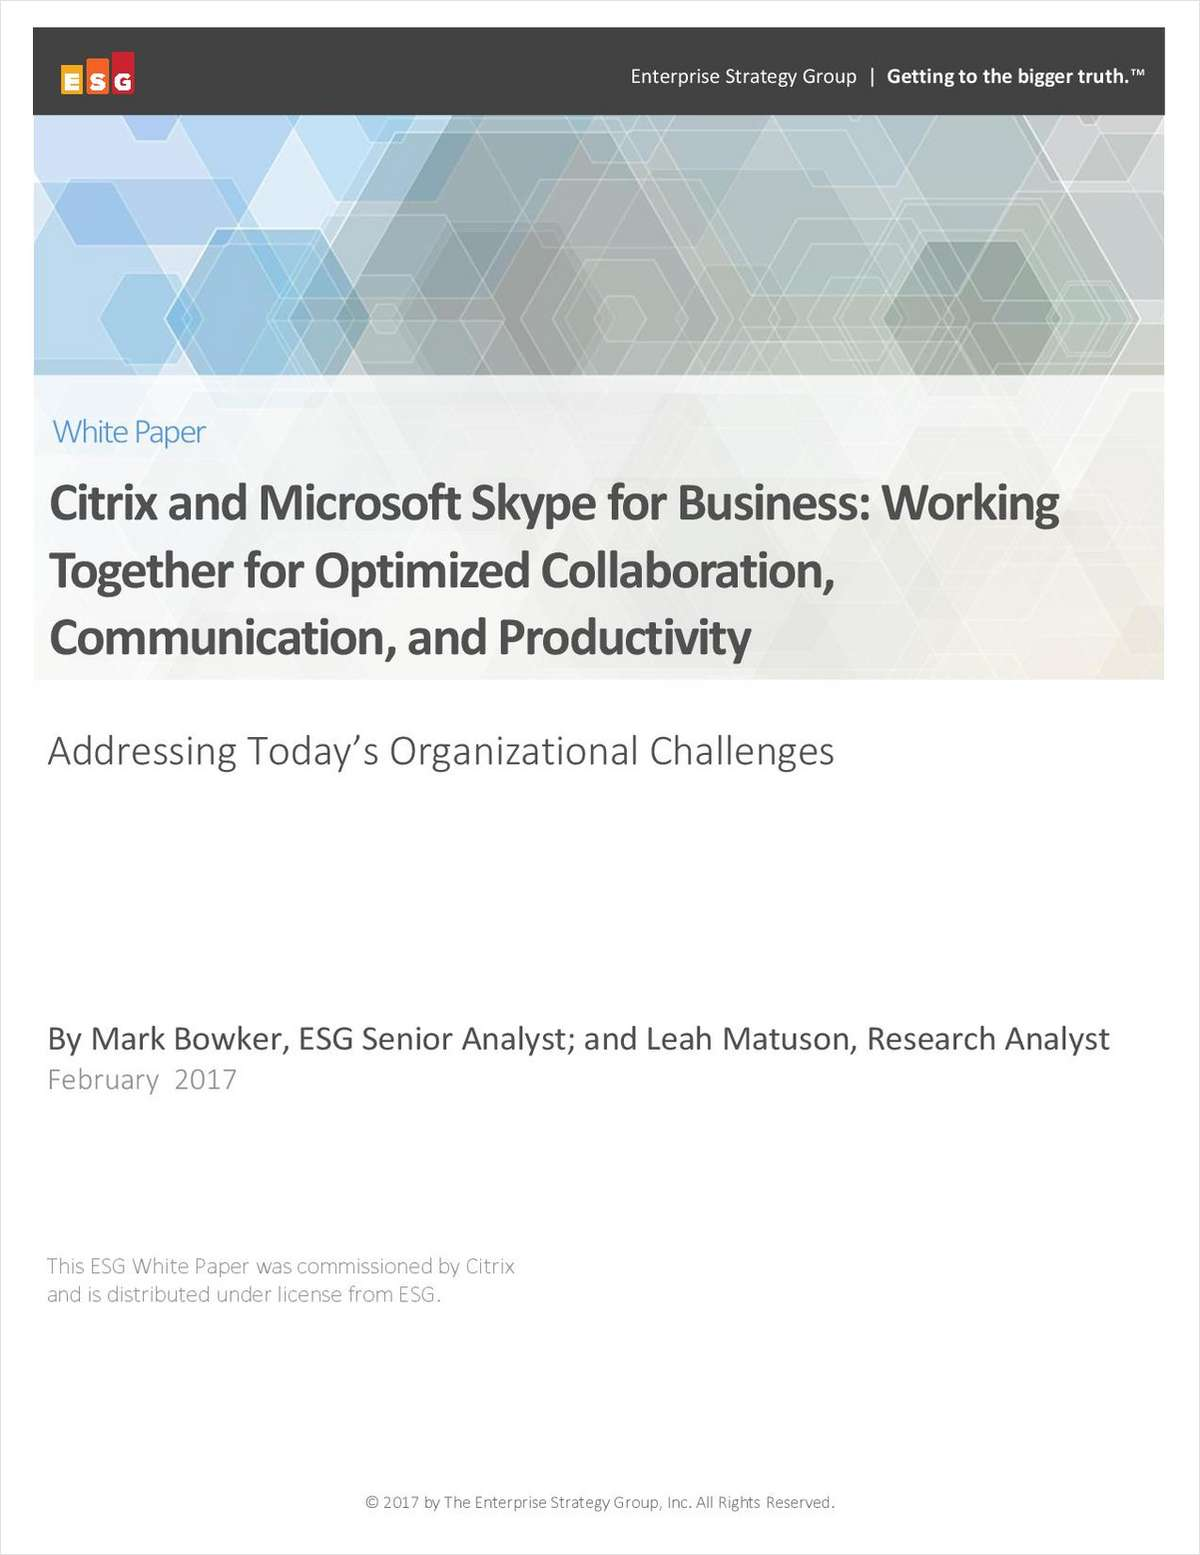 Citrix and Microsoft Skype for Business:  Working Together for Optimized Collaboration, Communication and Productivity